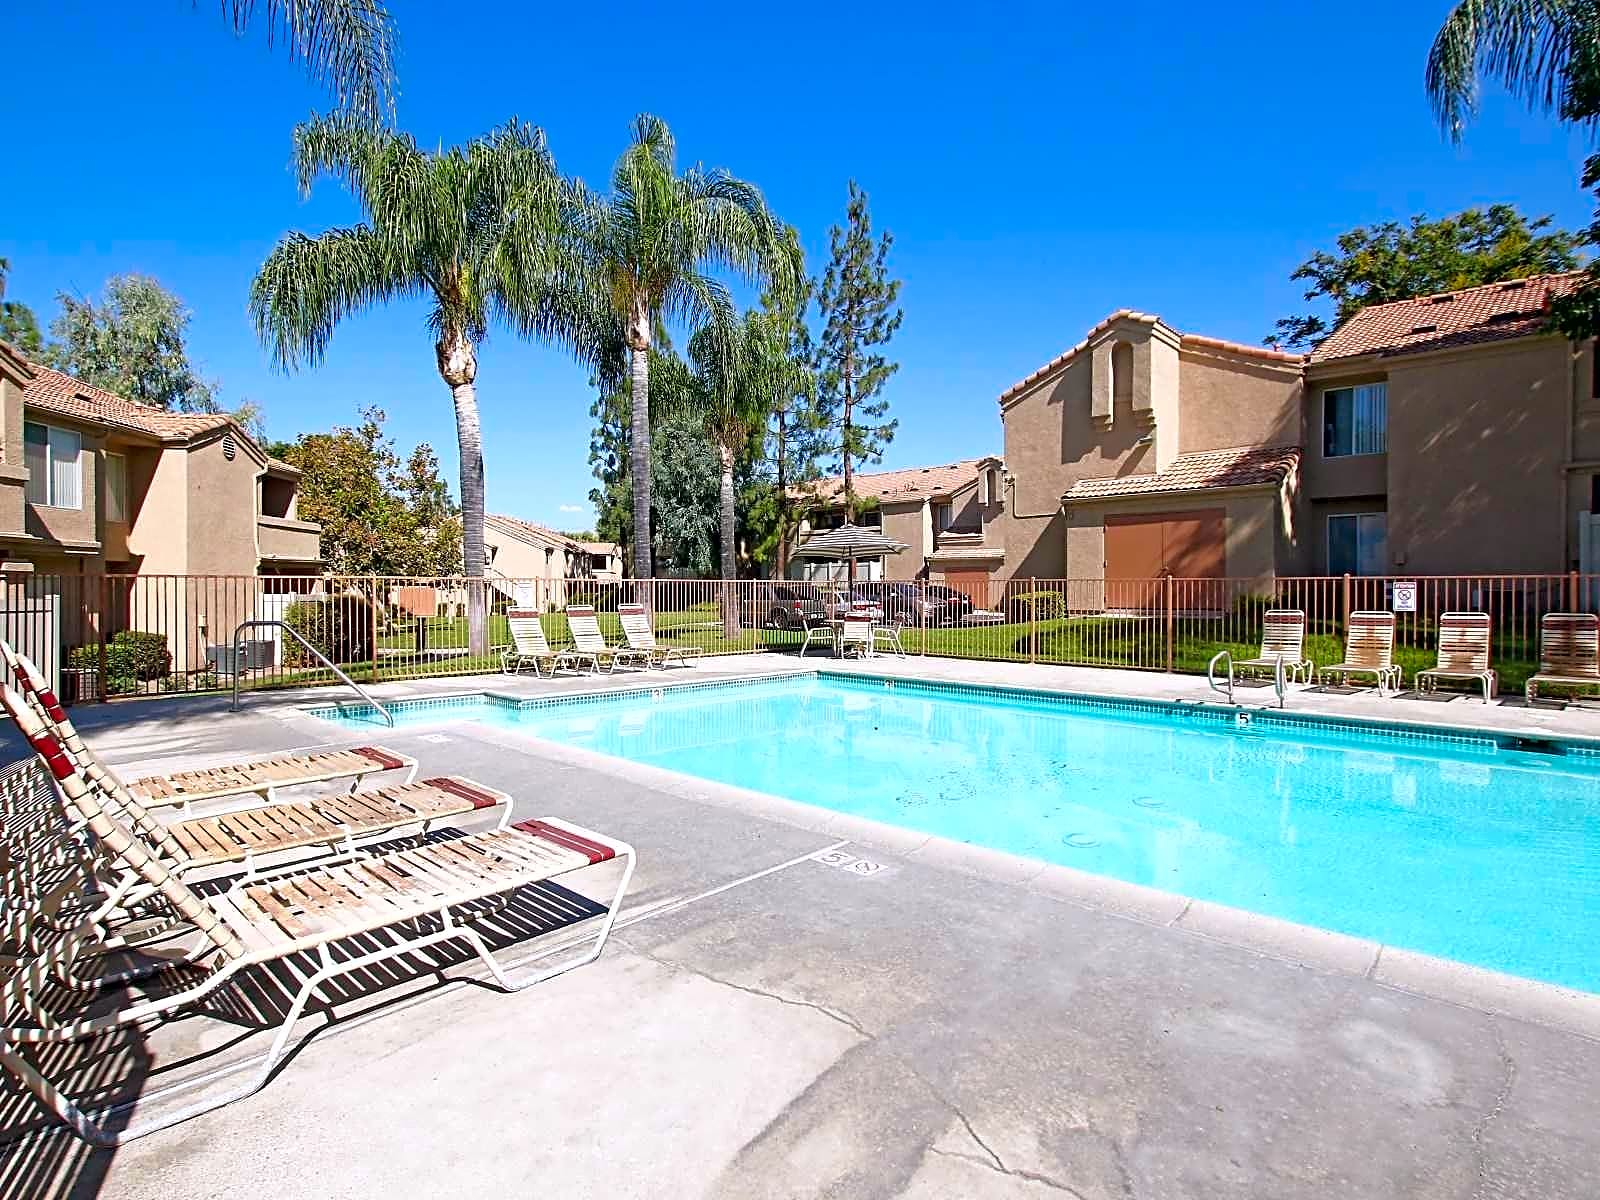 Apartments For Rent Near California Baptist University